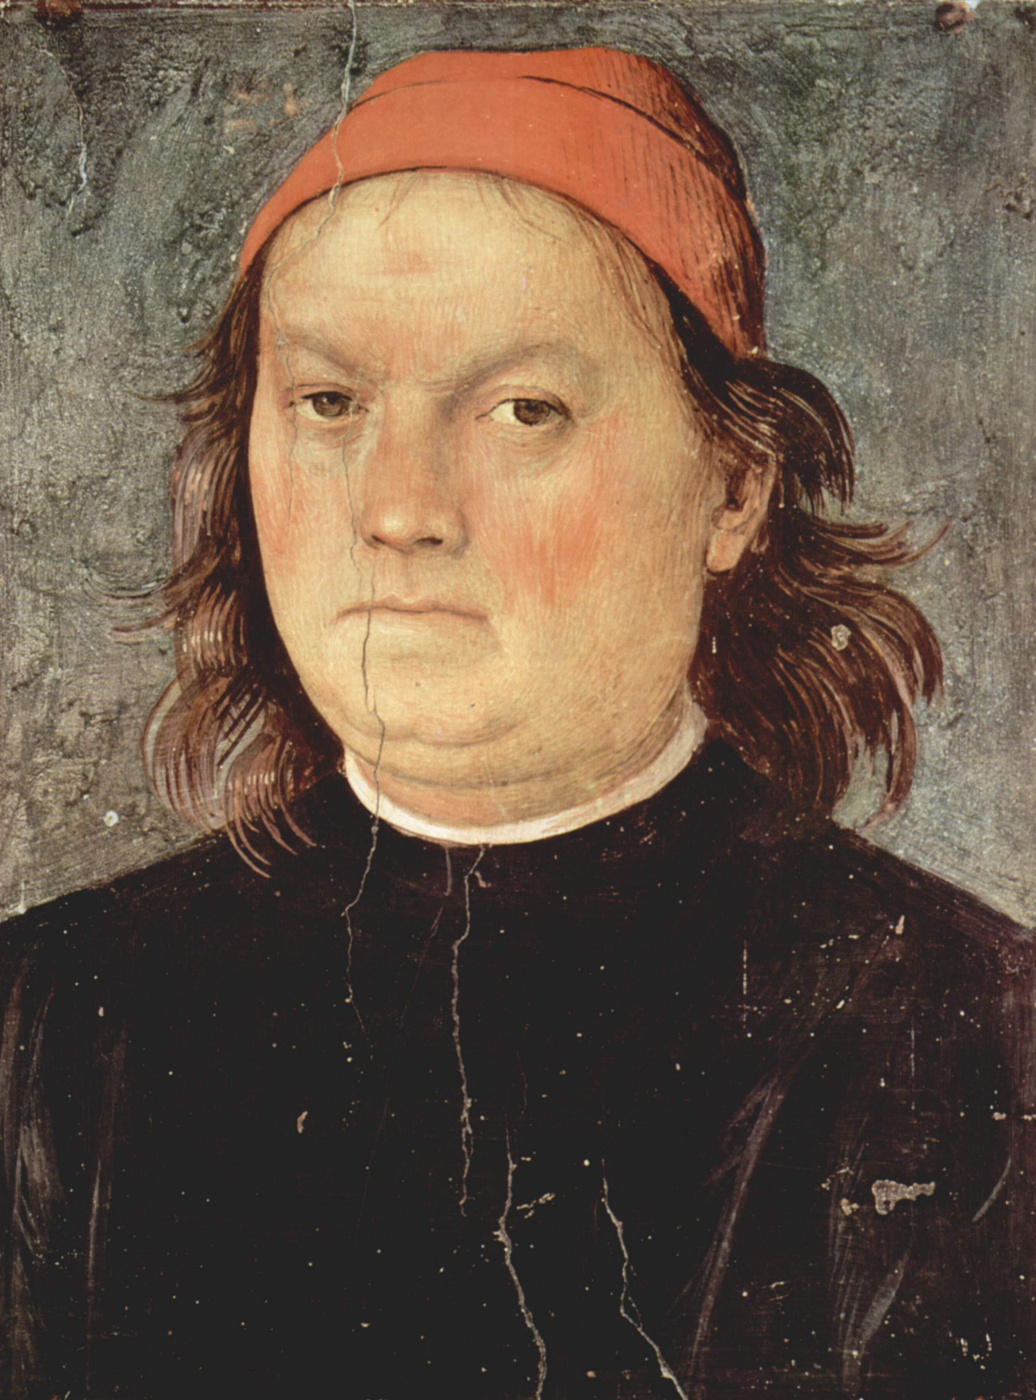 Pietro Perugino. The frescoes of the halls of the techniques of the management Board of the exchange in Perugia. Self portrait